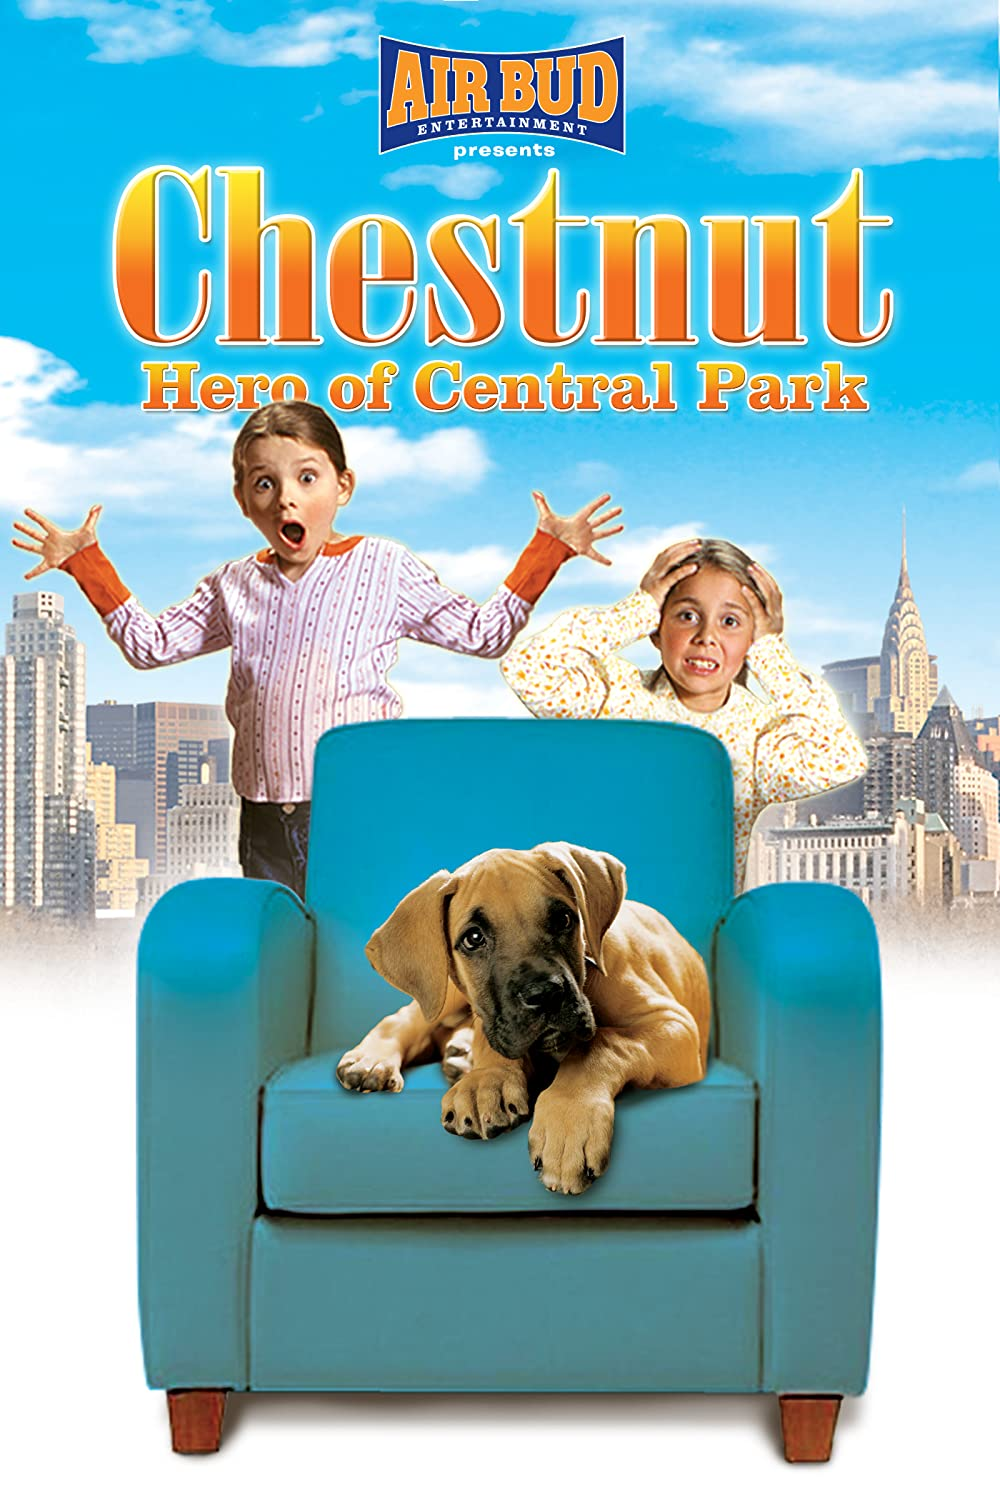 Chestnut: Hero of Central Park 2004 Hindi Dual Audio 300MB HDRip ESubs Download